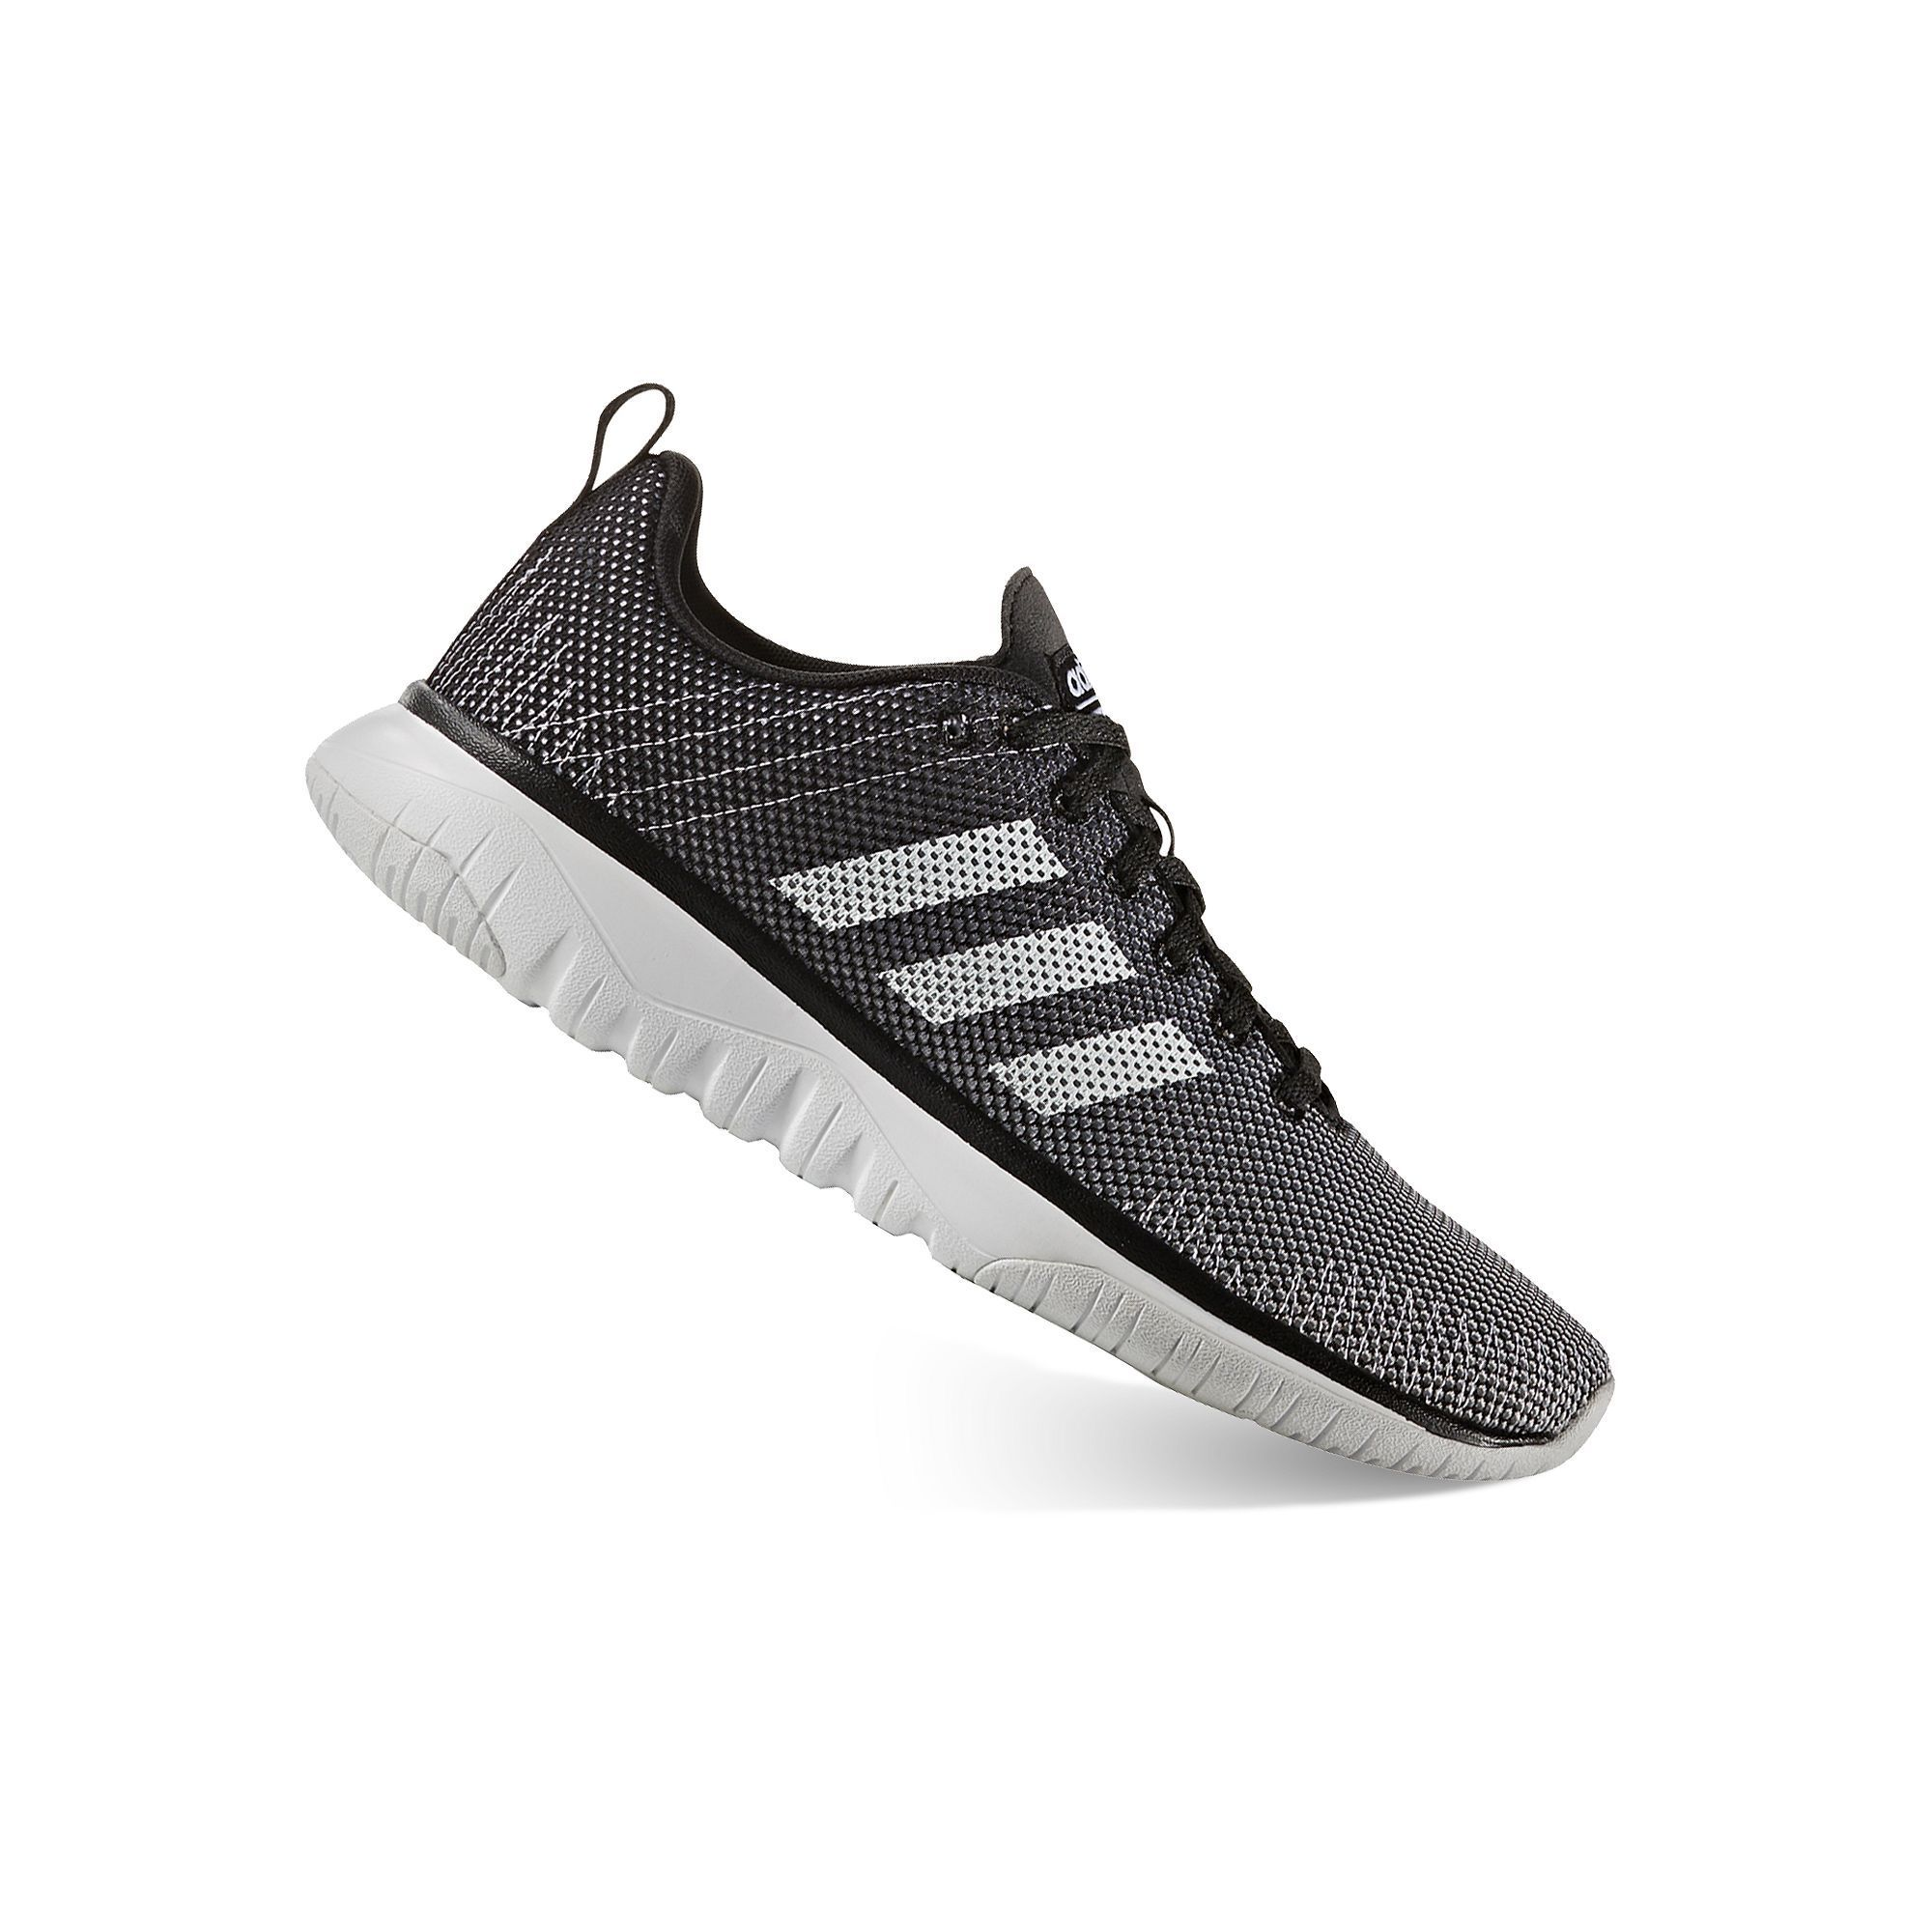 adidas neo cloudfoam super flex scarpe da donna, dimensioni: grey